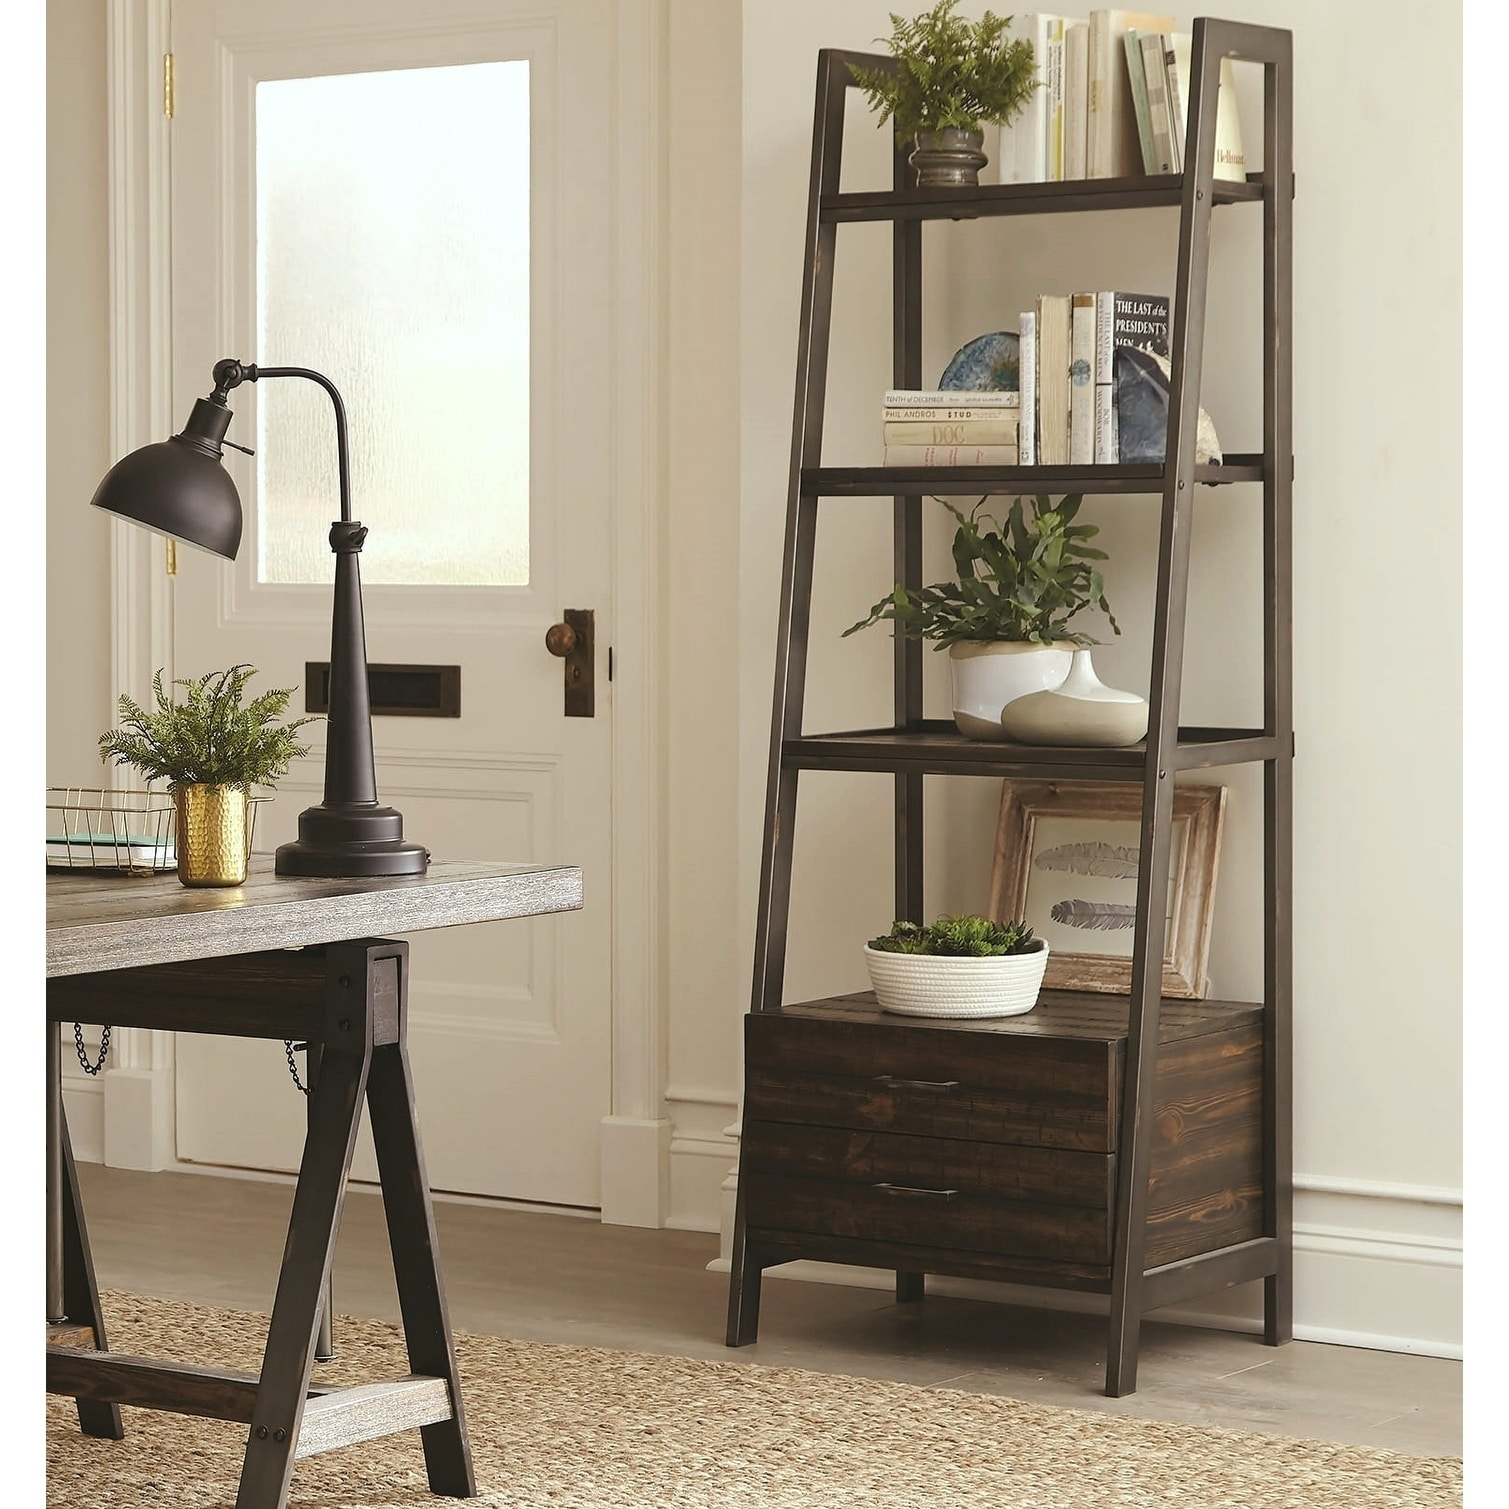 Rustic Industrial Design Display Bookcase With Storage Drawers On Sale Overstock 28387779